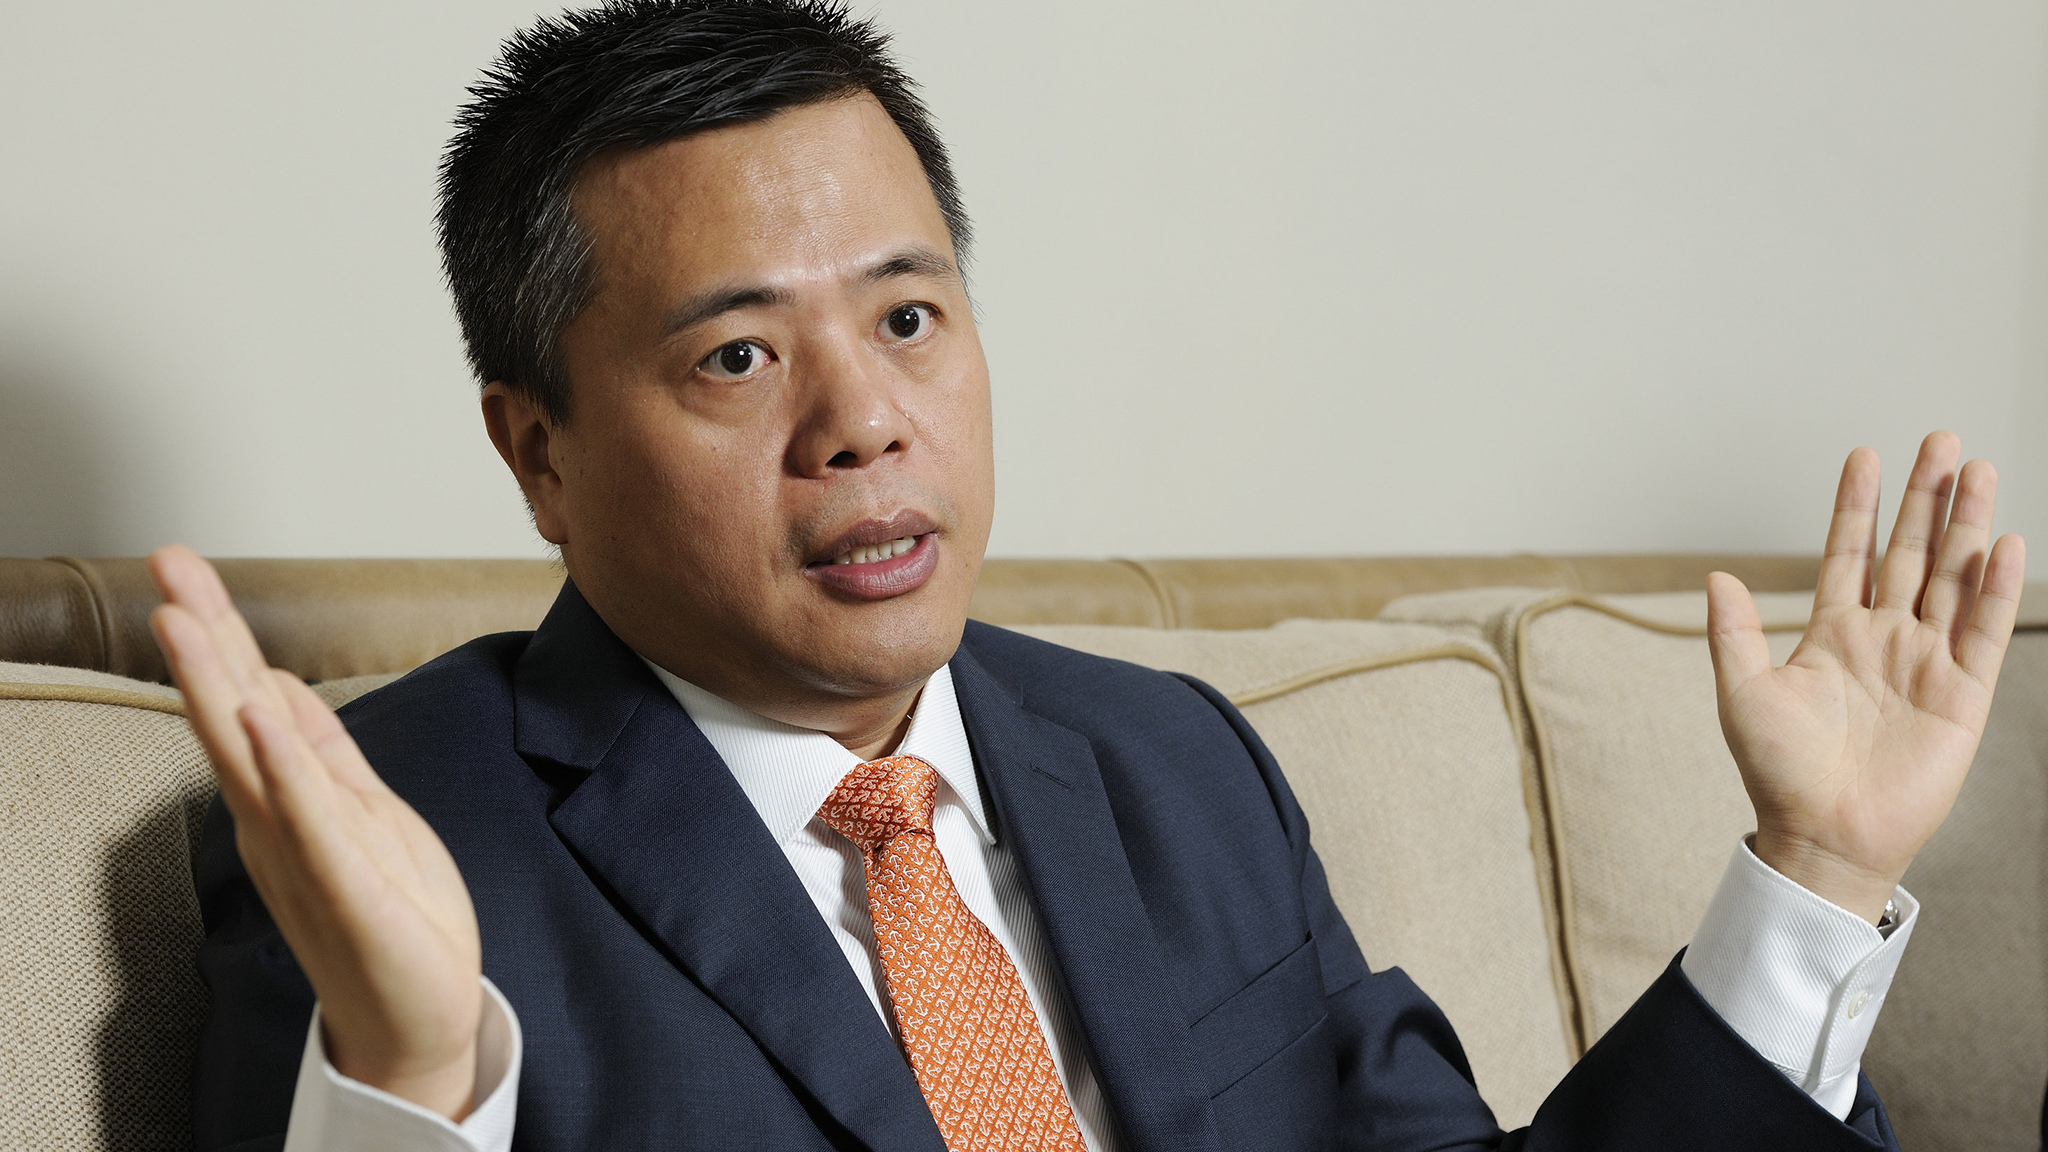 Chinese billionaire with ambitions to reshape investment models | Financial  Times